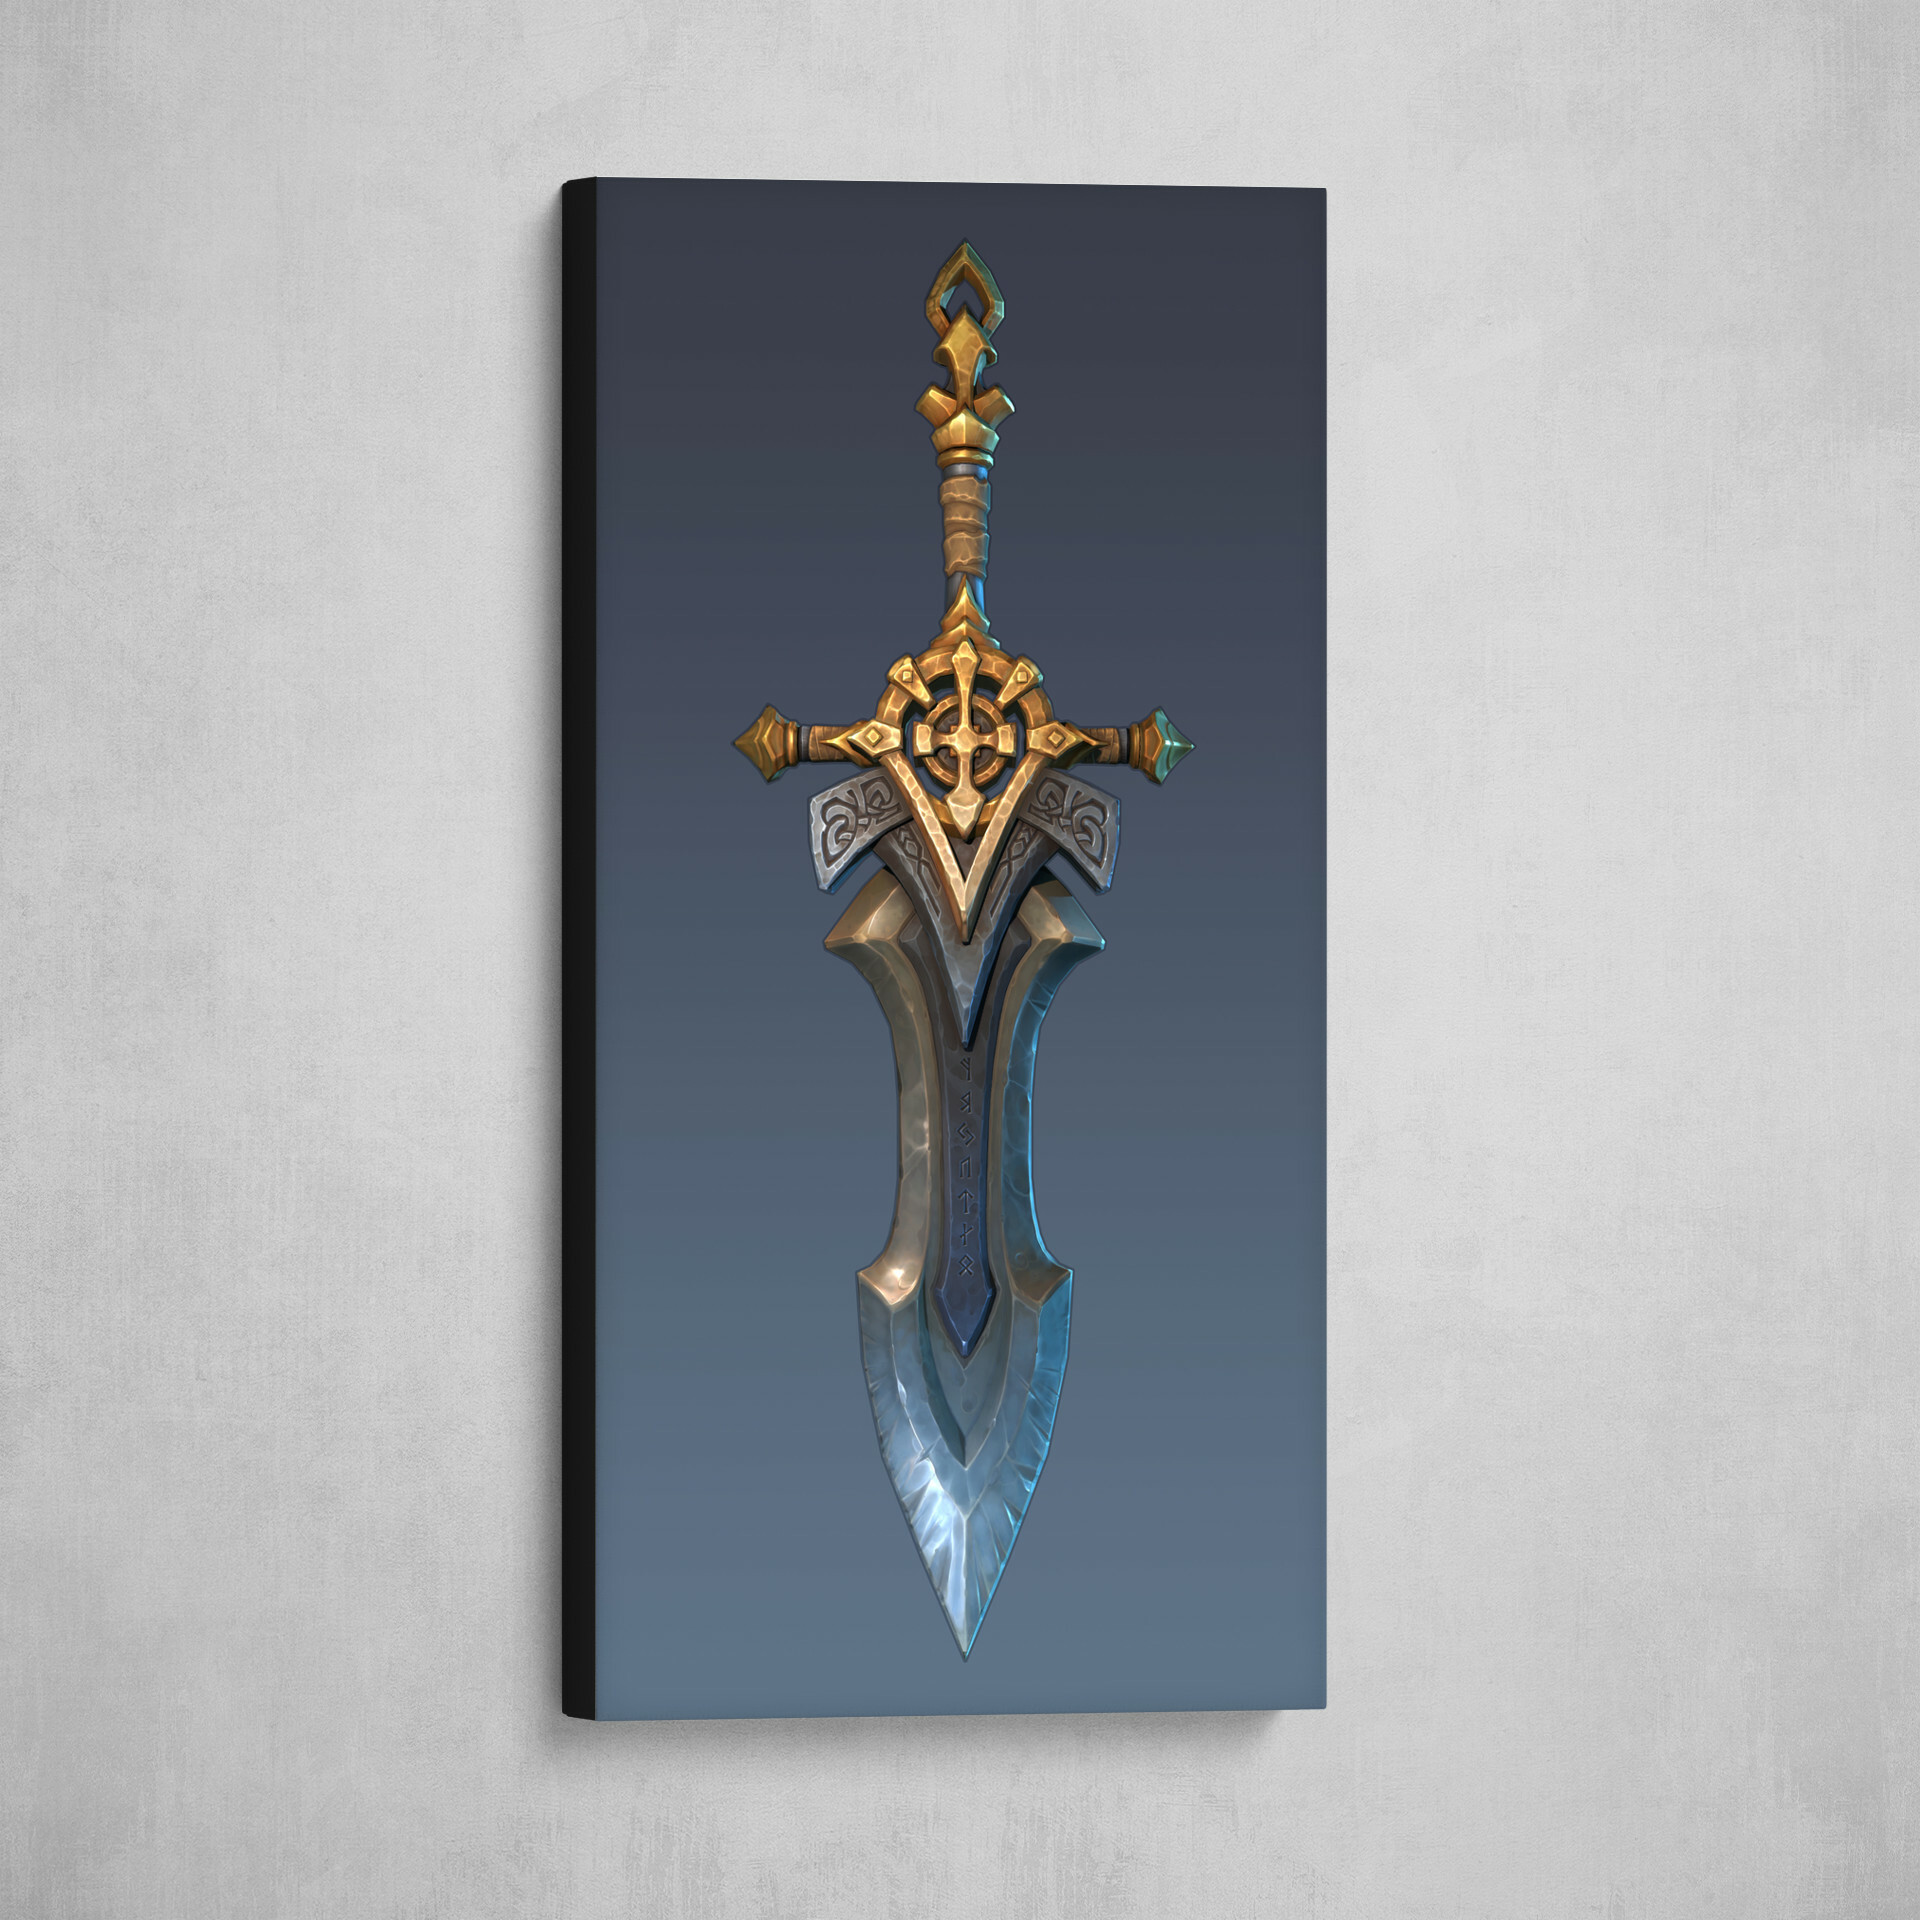 You can now buy an art print of a sword here : https://www.artstation.com/prints/art_print/8Kb0/the-legend-of-king-arthur-artstation-challenge-excalibur